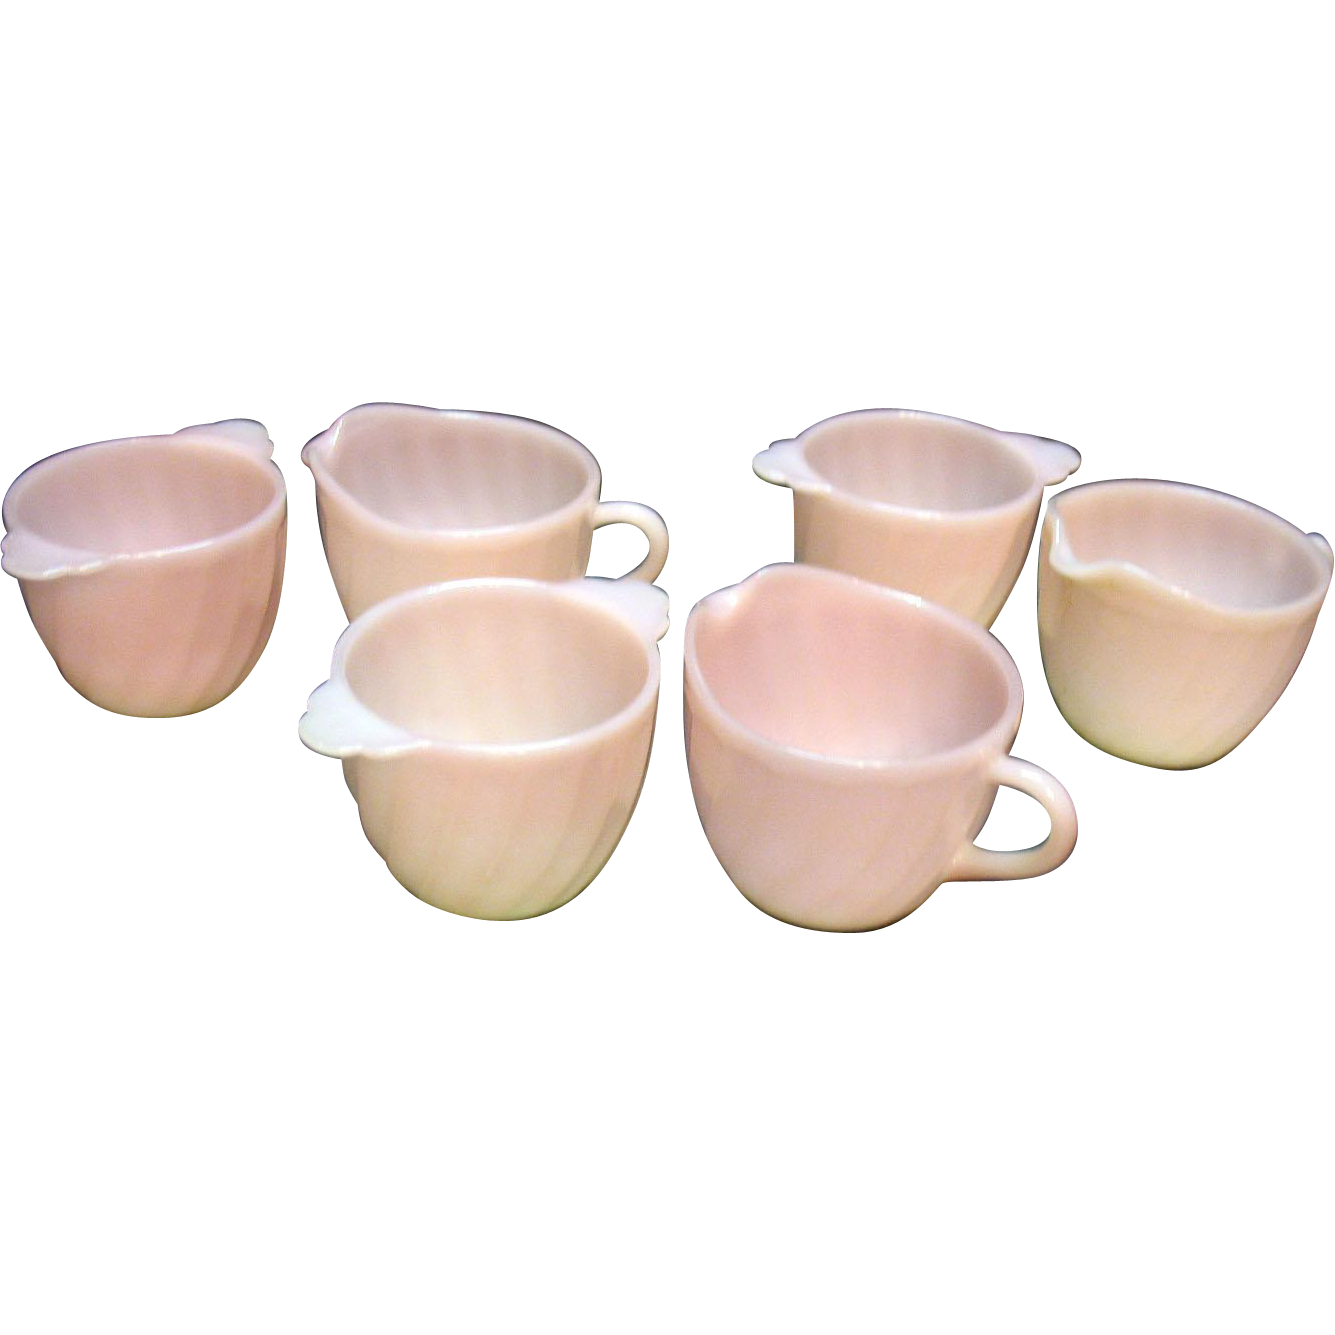 Vintage Anchor Hocking Fire King 3 Sugar & Creamer Sets Pink Swirl 1949-62 Good Condition